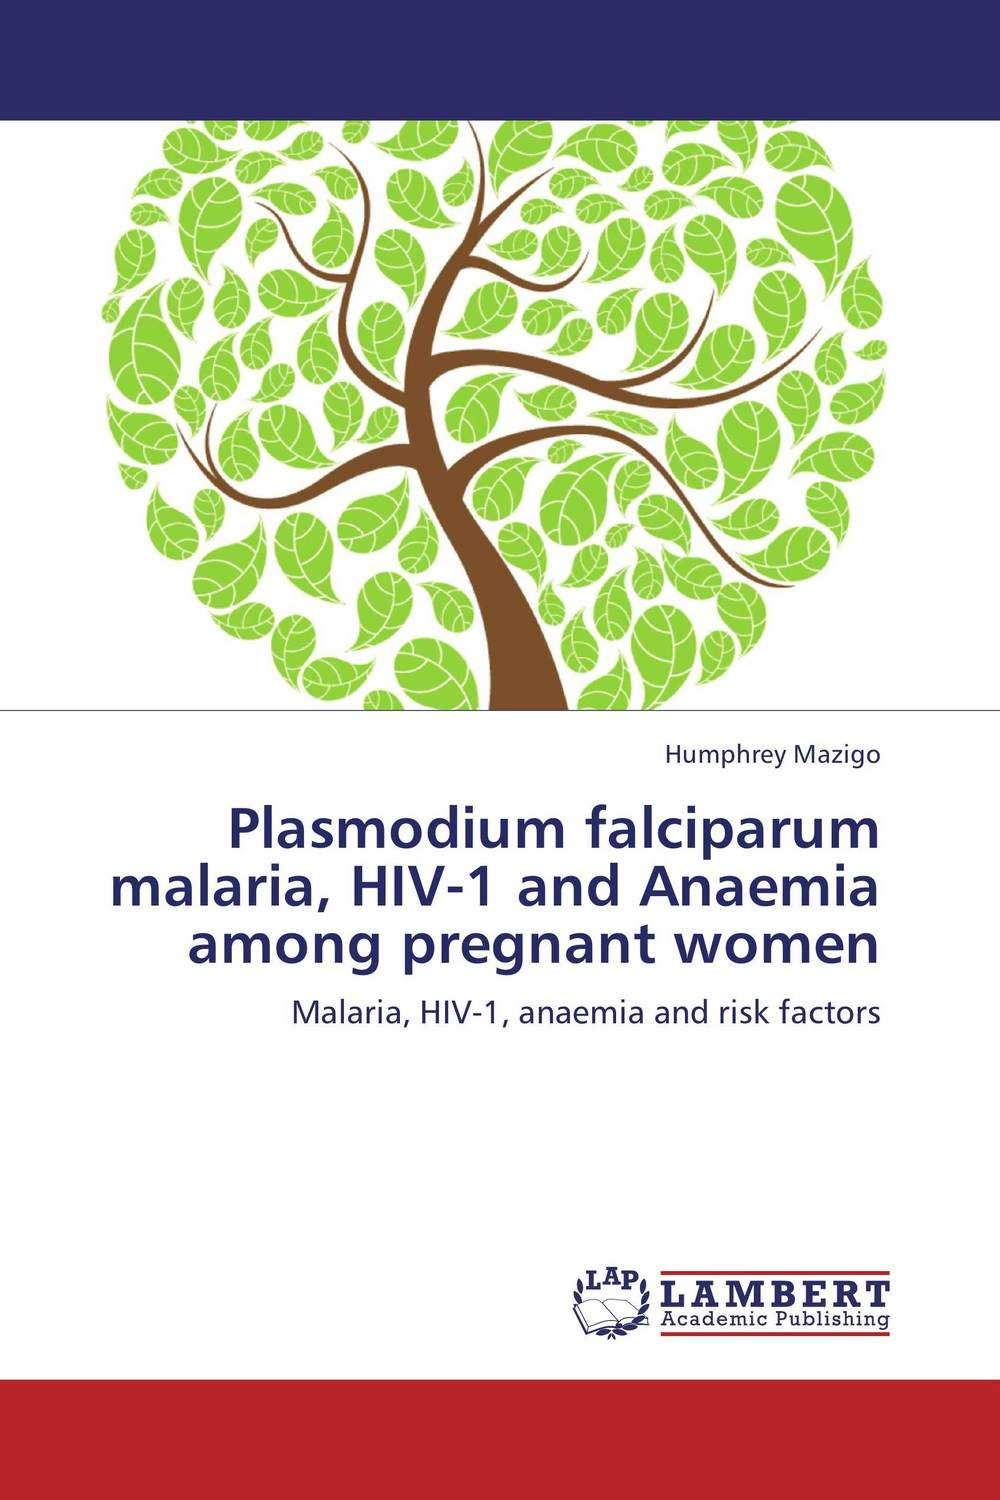 Plasmodium falciparum malaria, HIV-1 and Anaemia among pregnant women